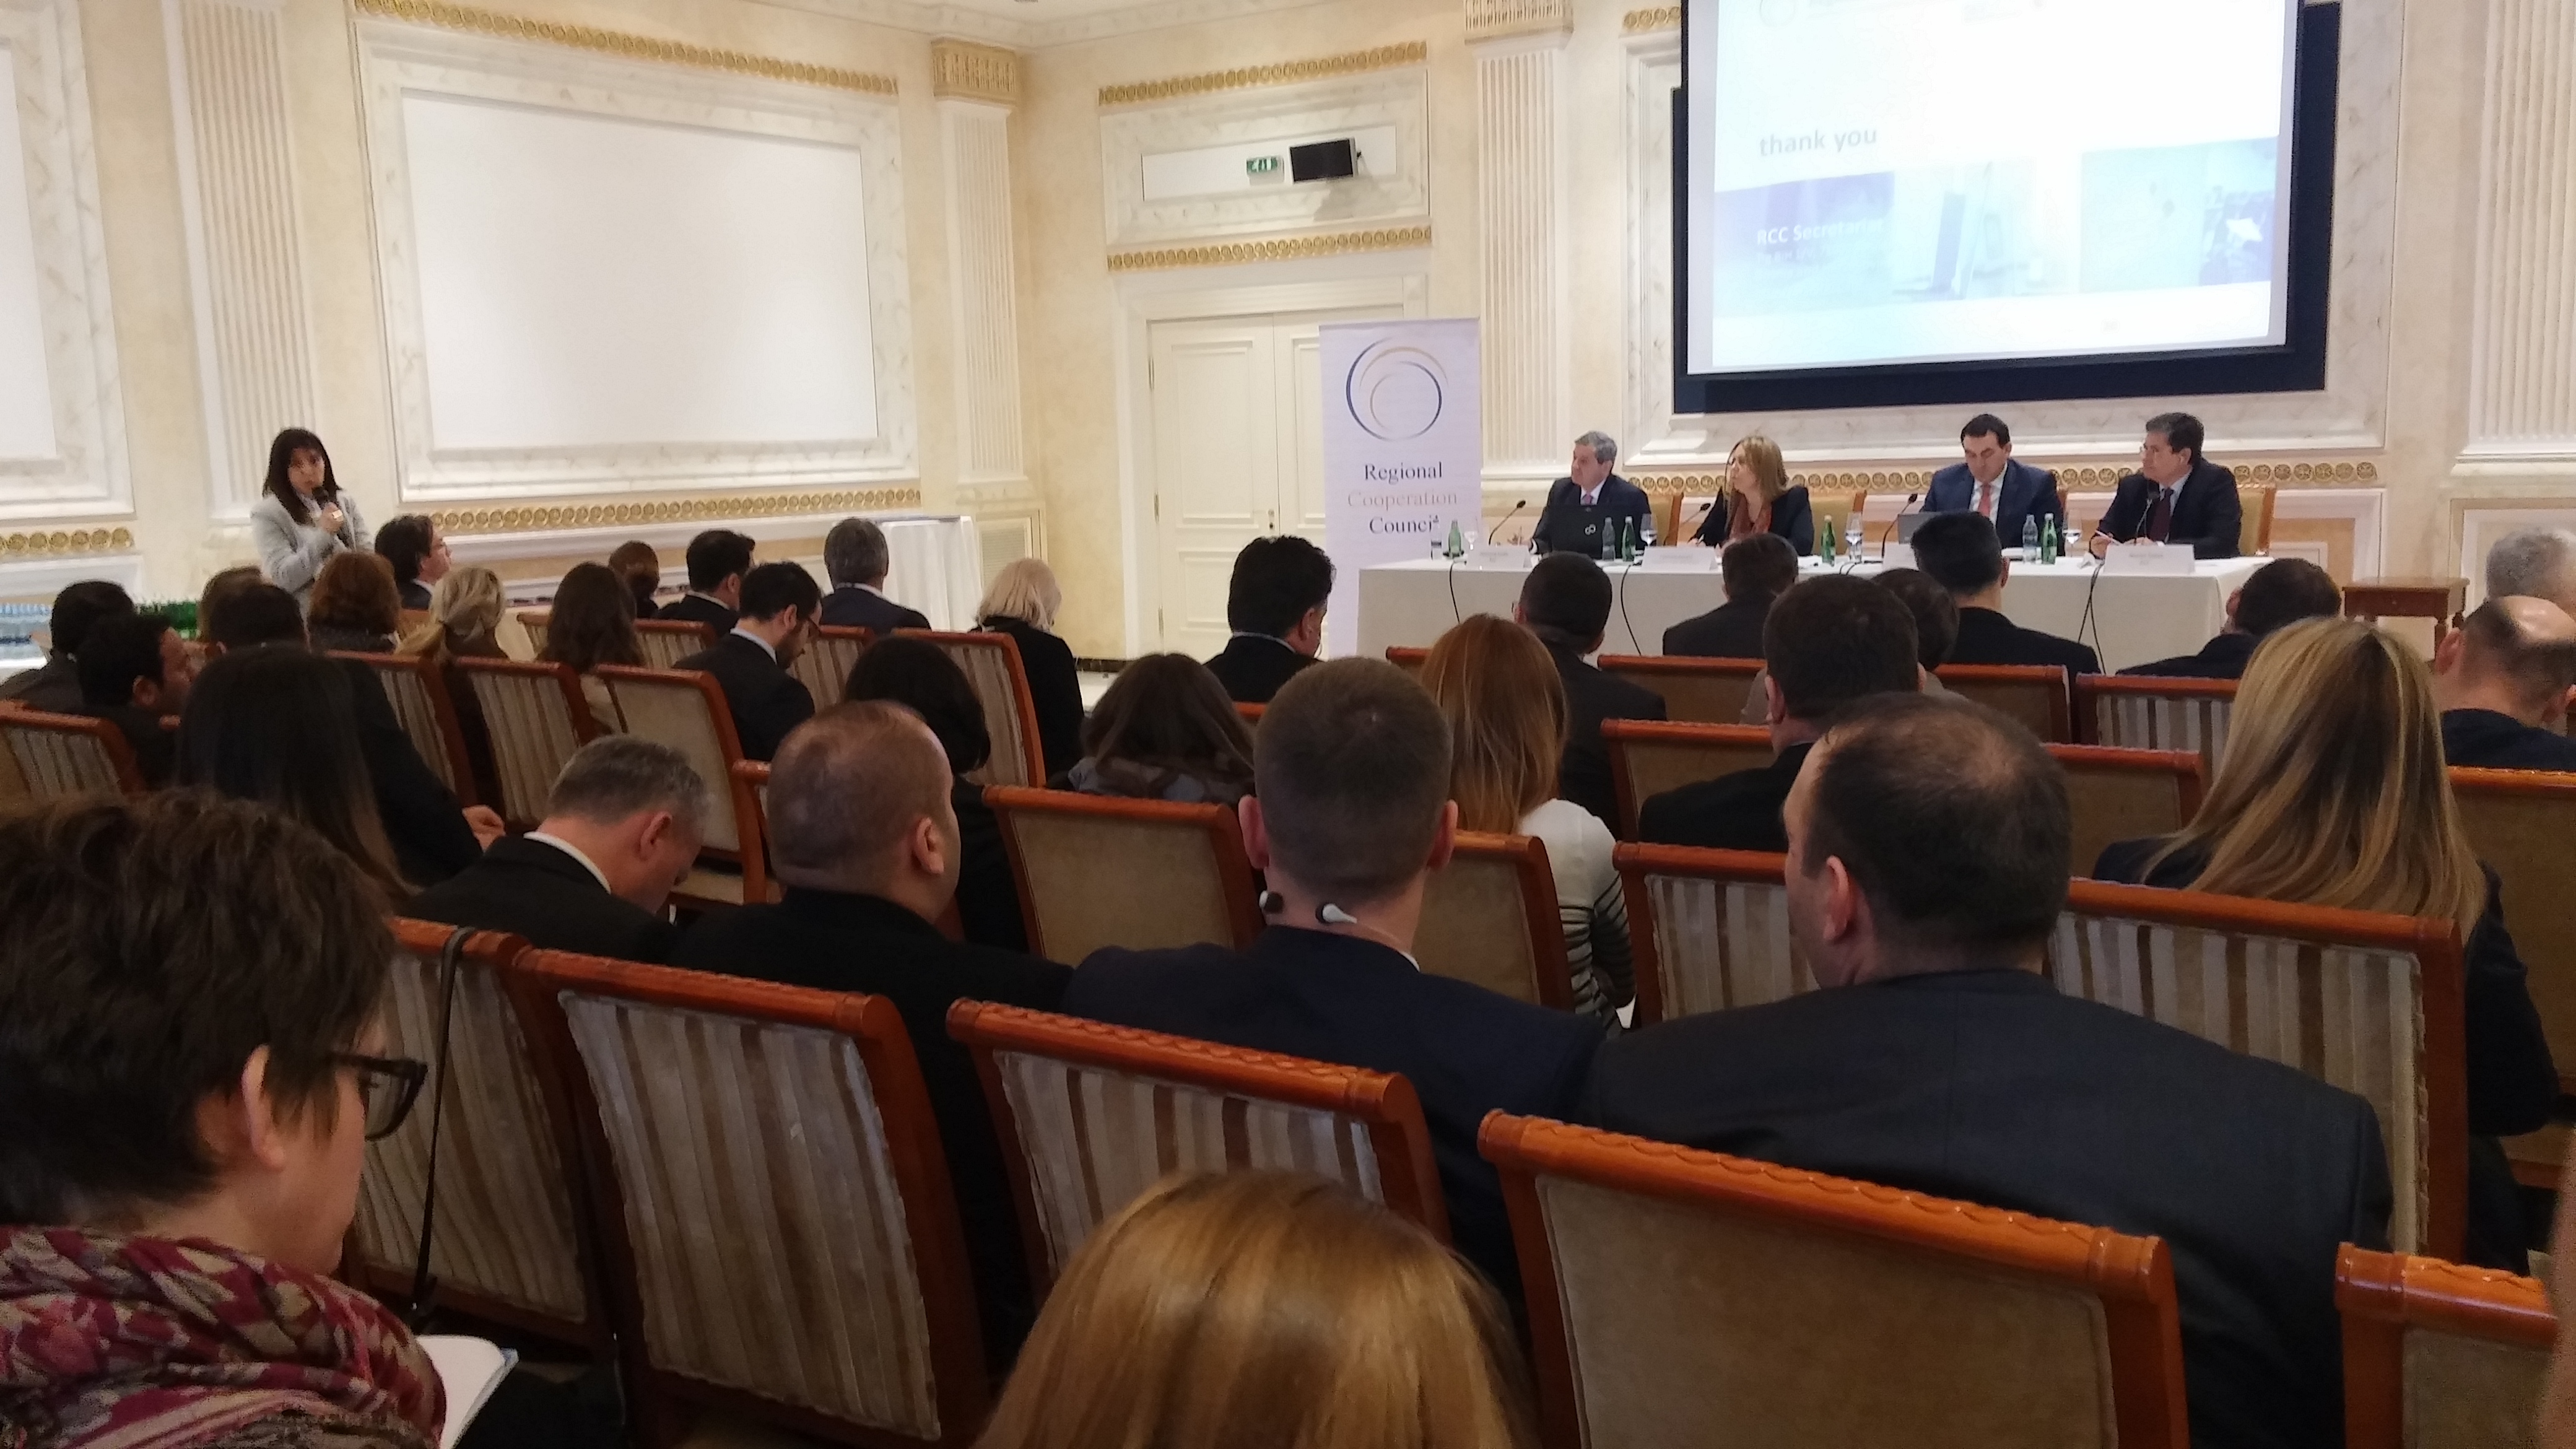 The implementation of the RCC's SEE 2020 strategy, was the focus of the conference in Pristina, organized by the RCC Secretariat in cooperation with the Ministry of Trade and Industry, and the OECD, on 3 February 2015. (Photo RCC/Selma Ahatovic-Lihic)